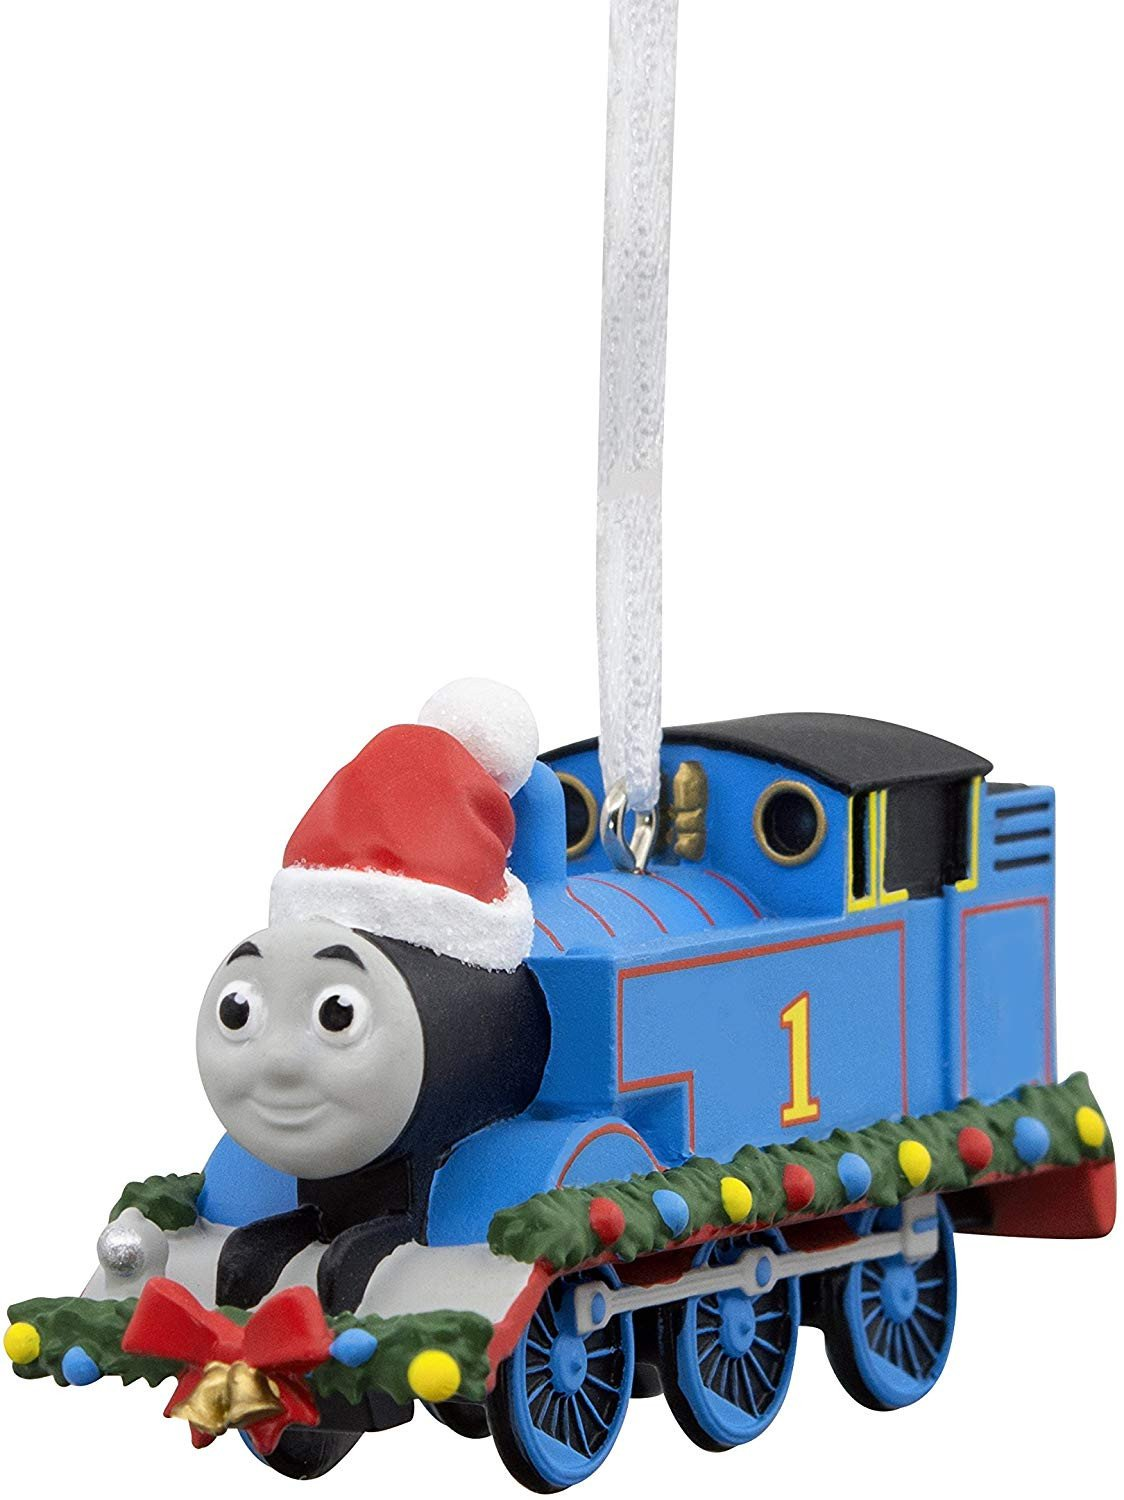 Thomas the Train Bedroom Decor Best Of Hallmark Christmas ornament Friends Thomas the Tank Engine